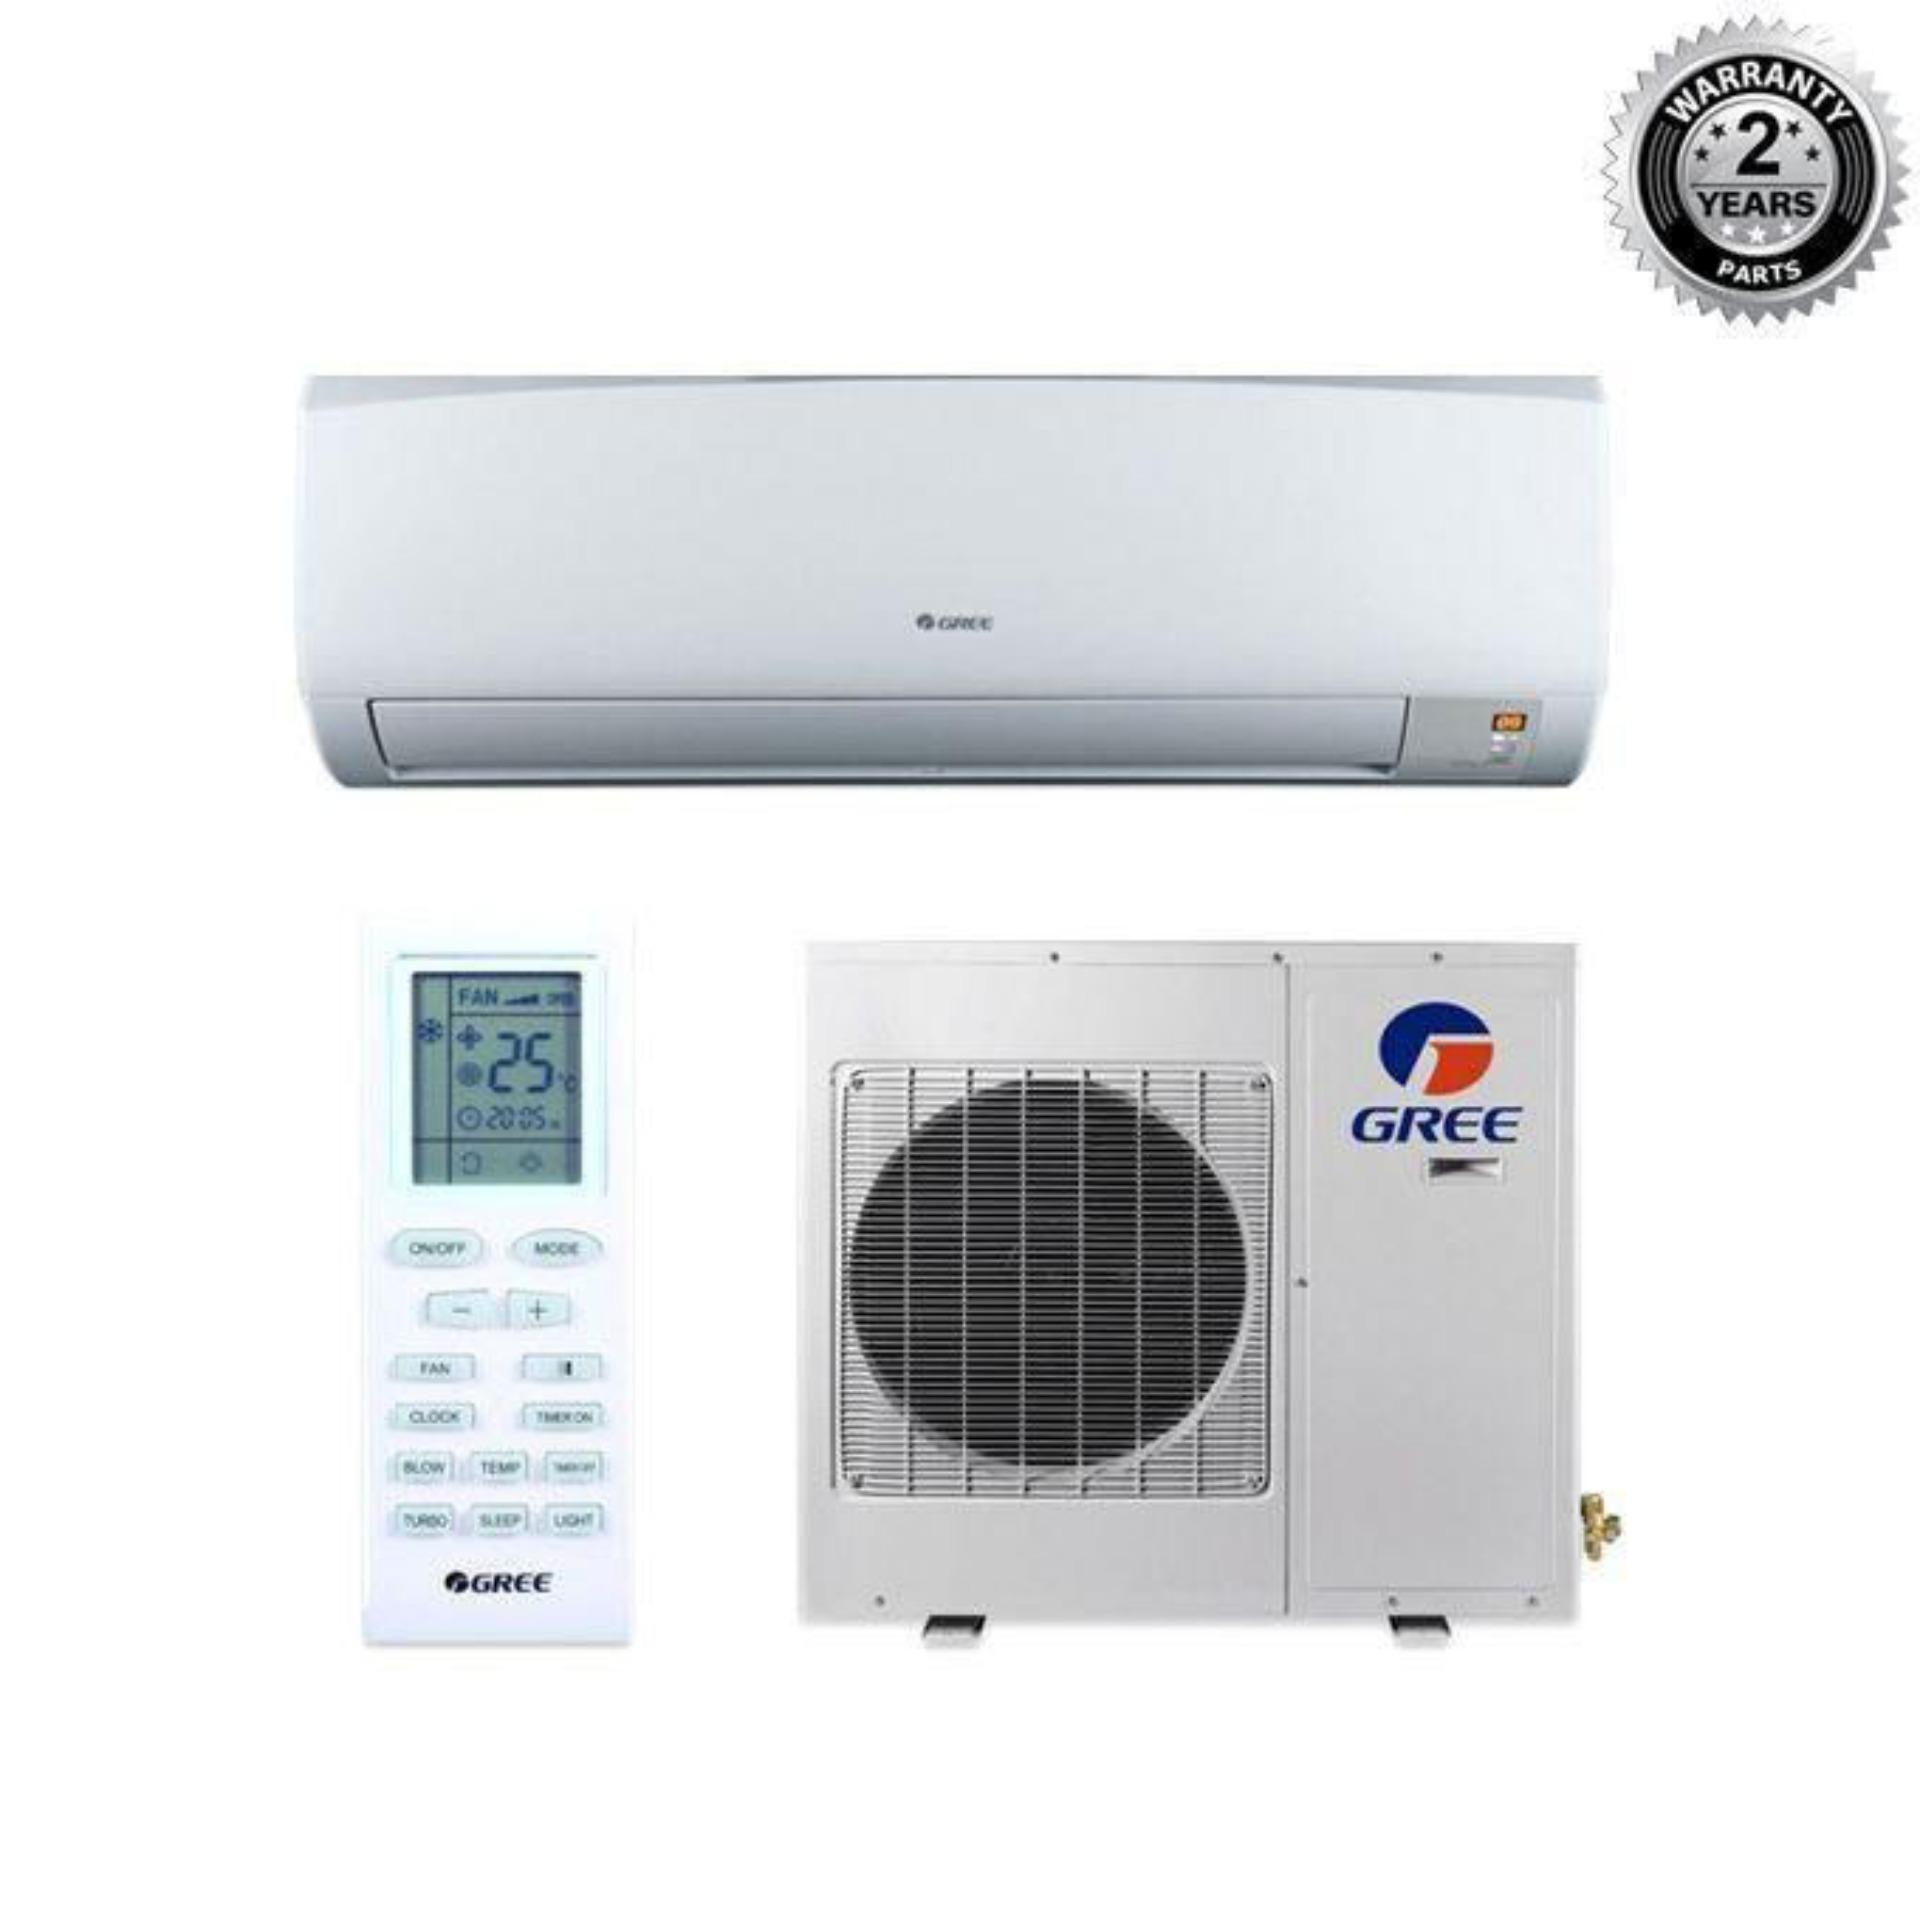 GS18CT - Split Ac - 1.5 Ton - White